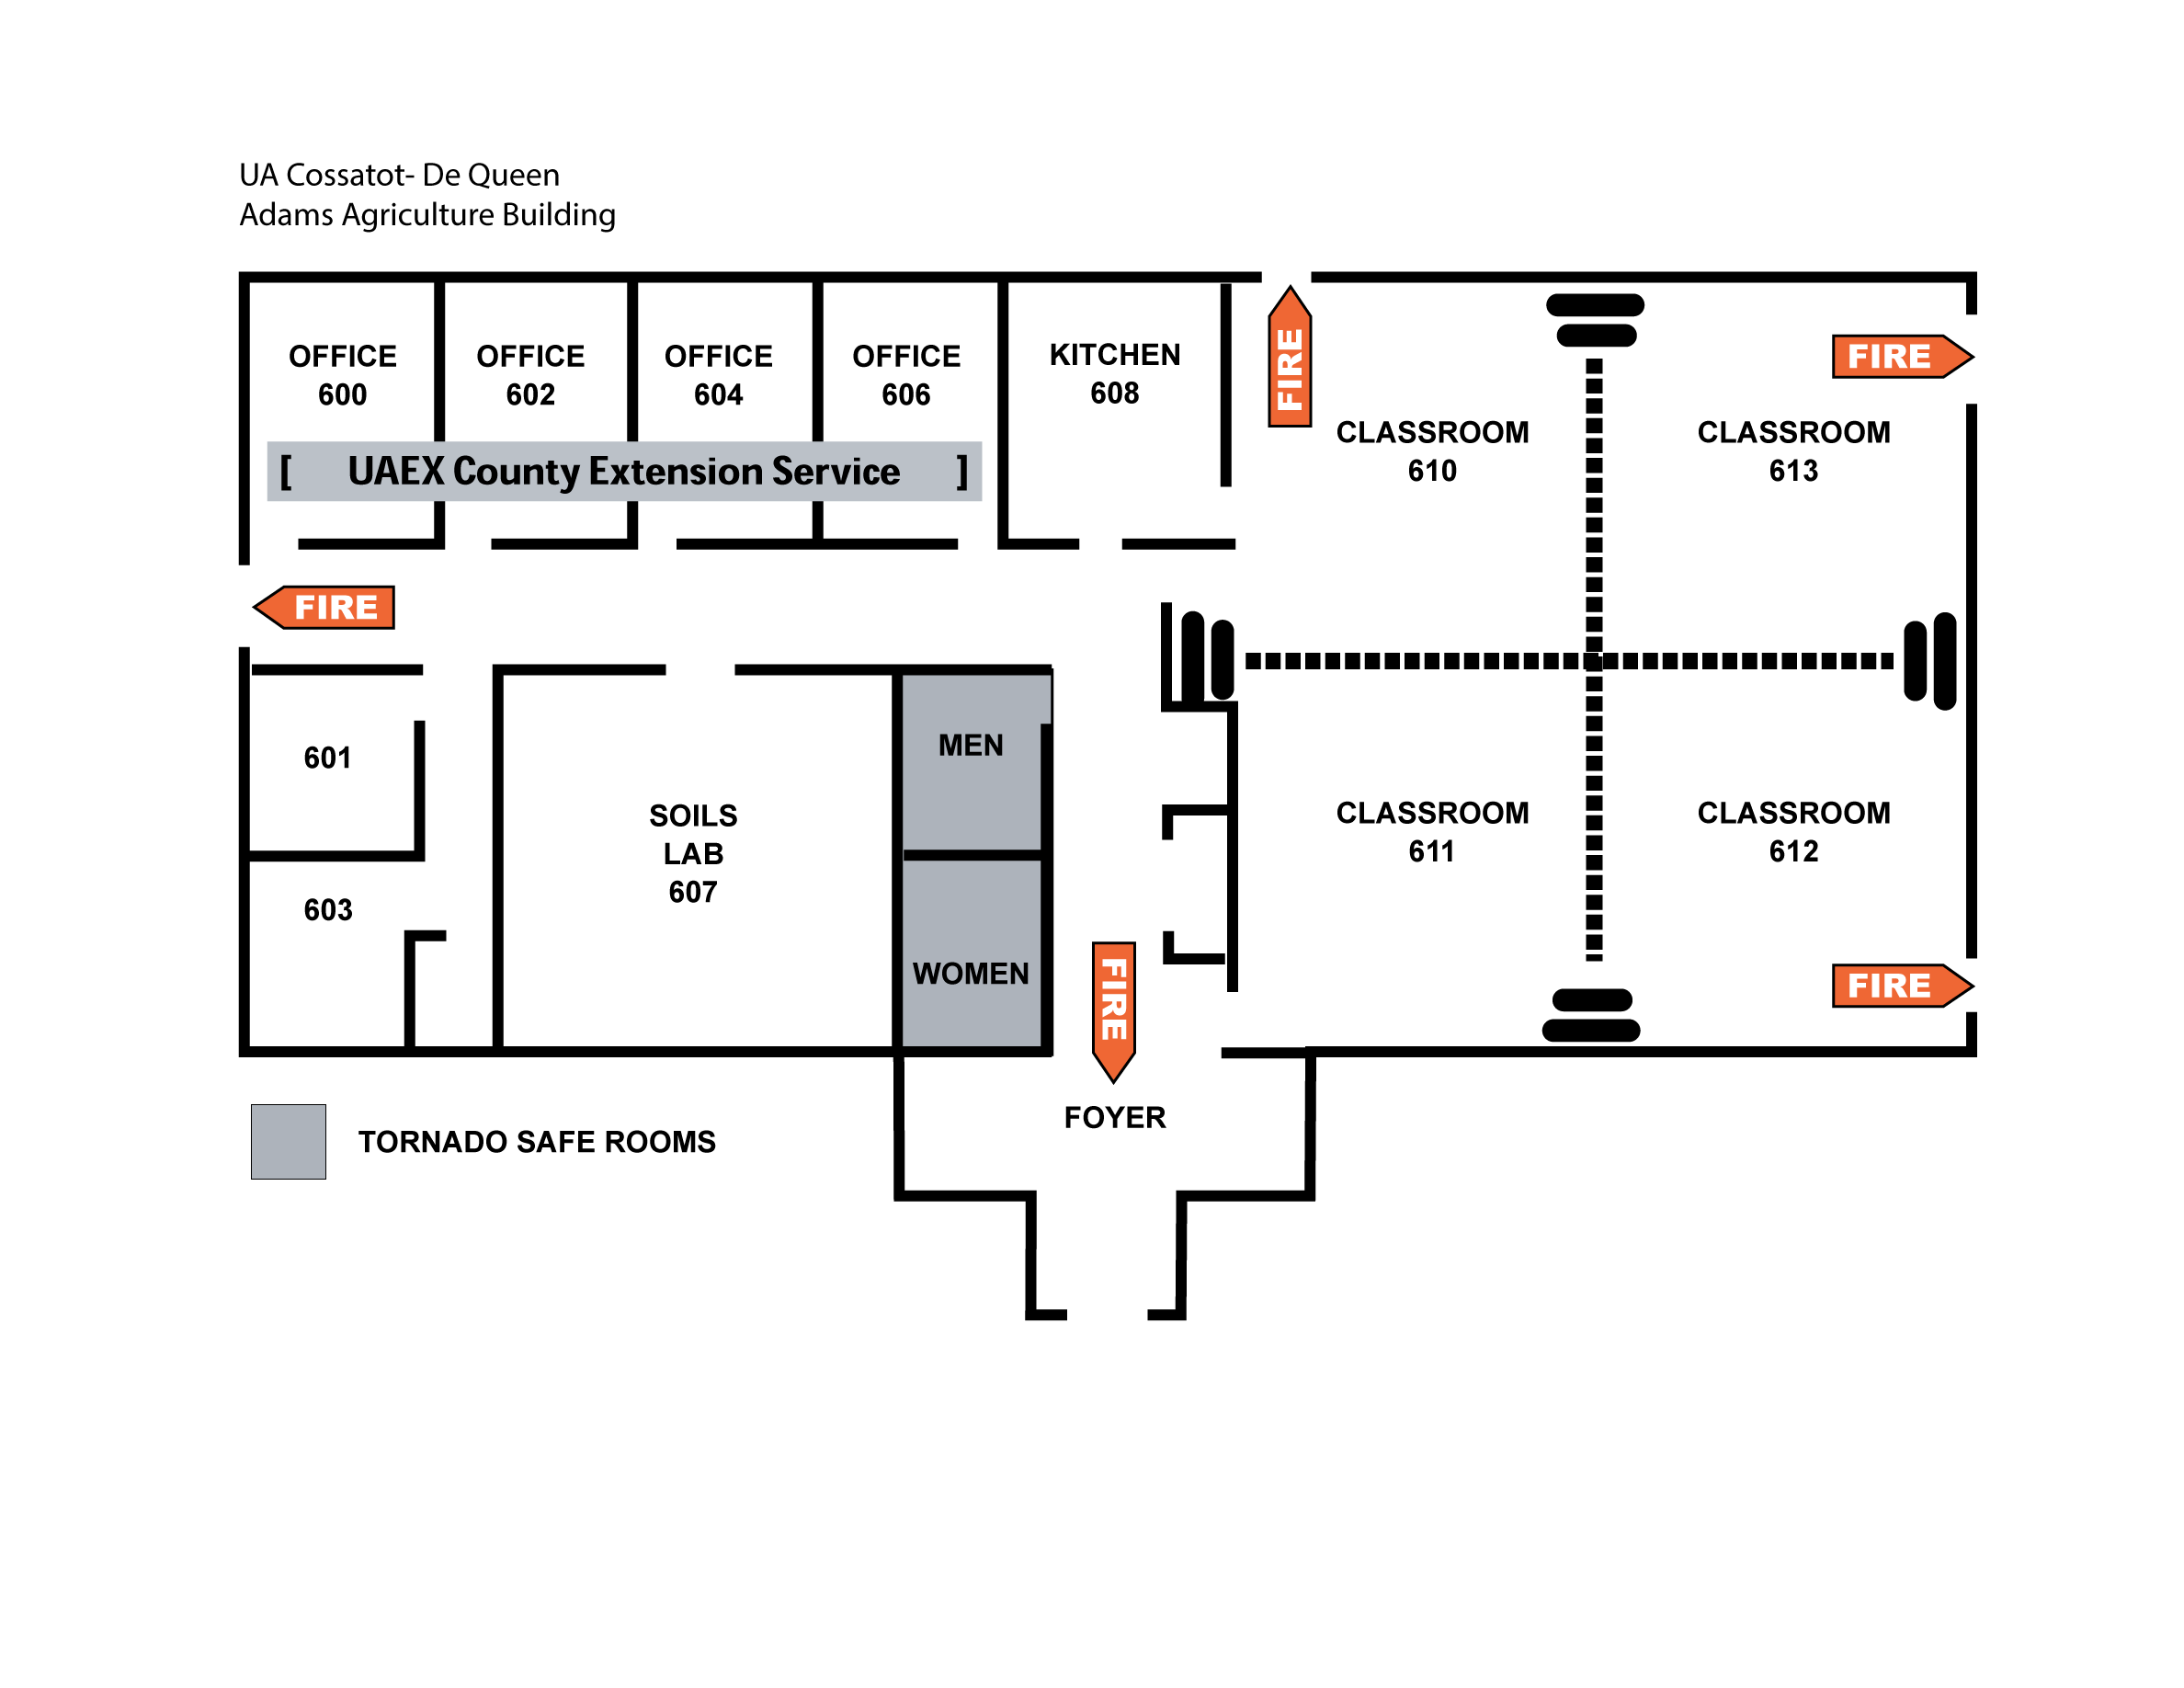 Map of Adams Agriculture Building on De Queen Campus